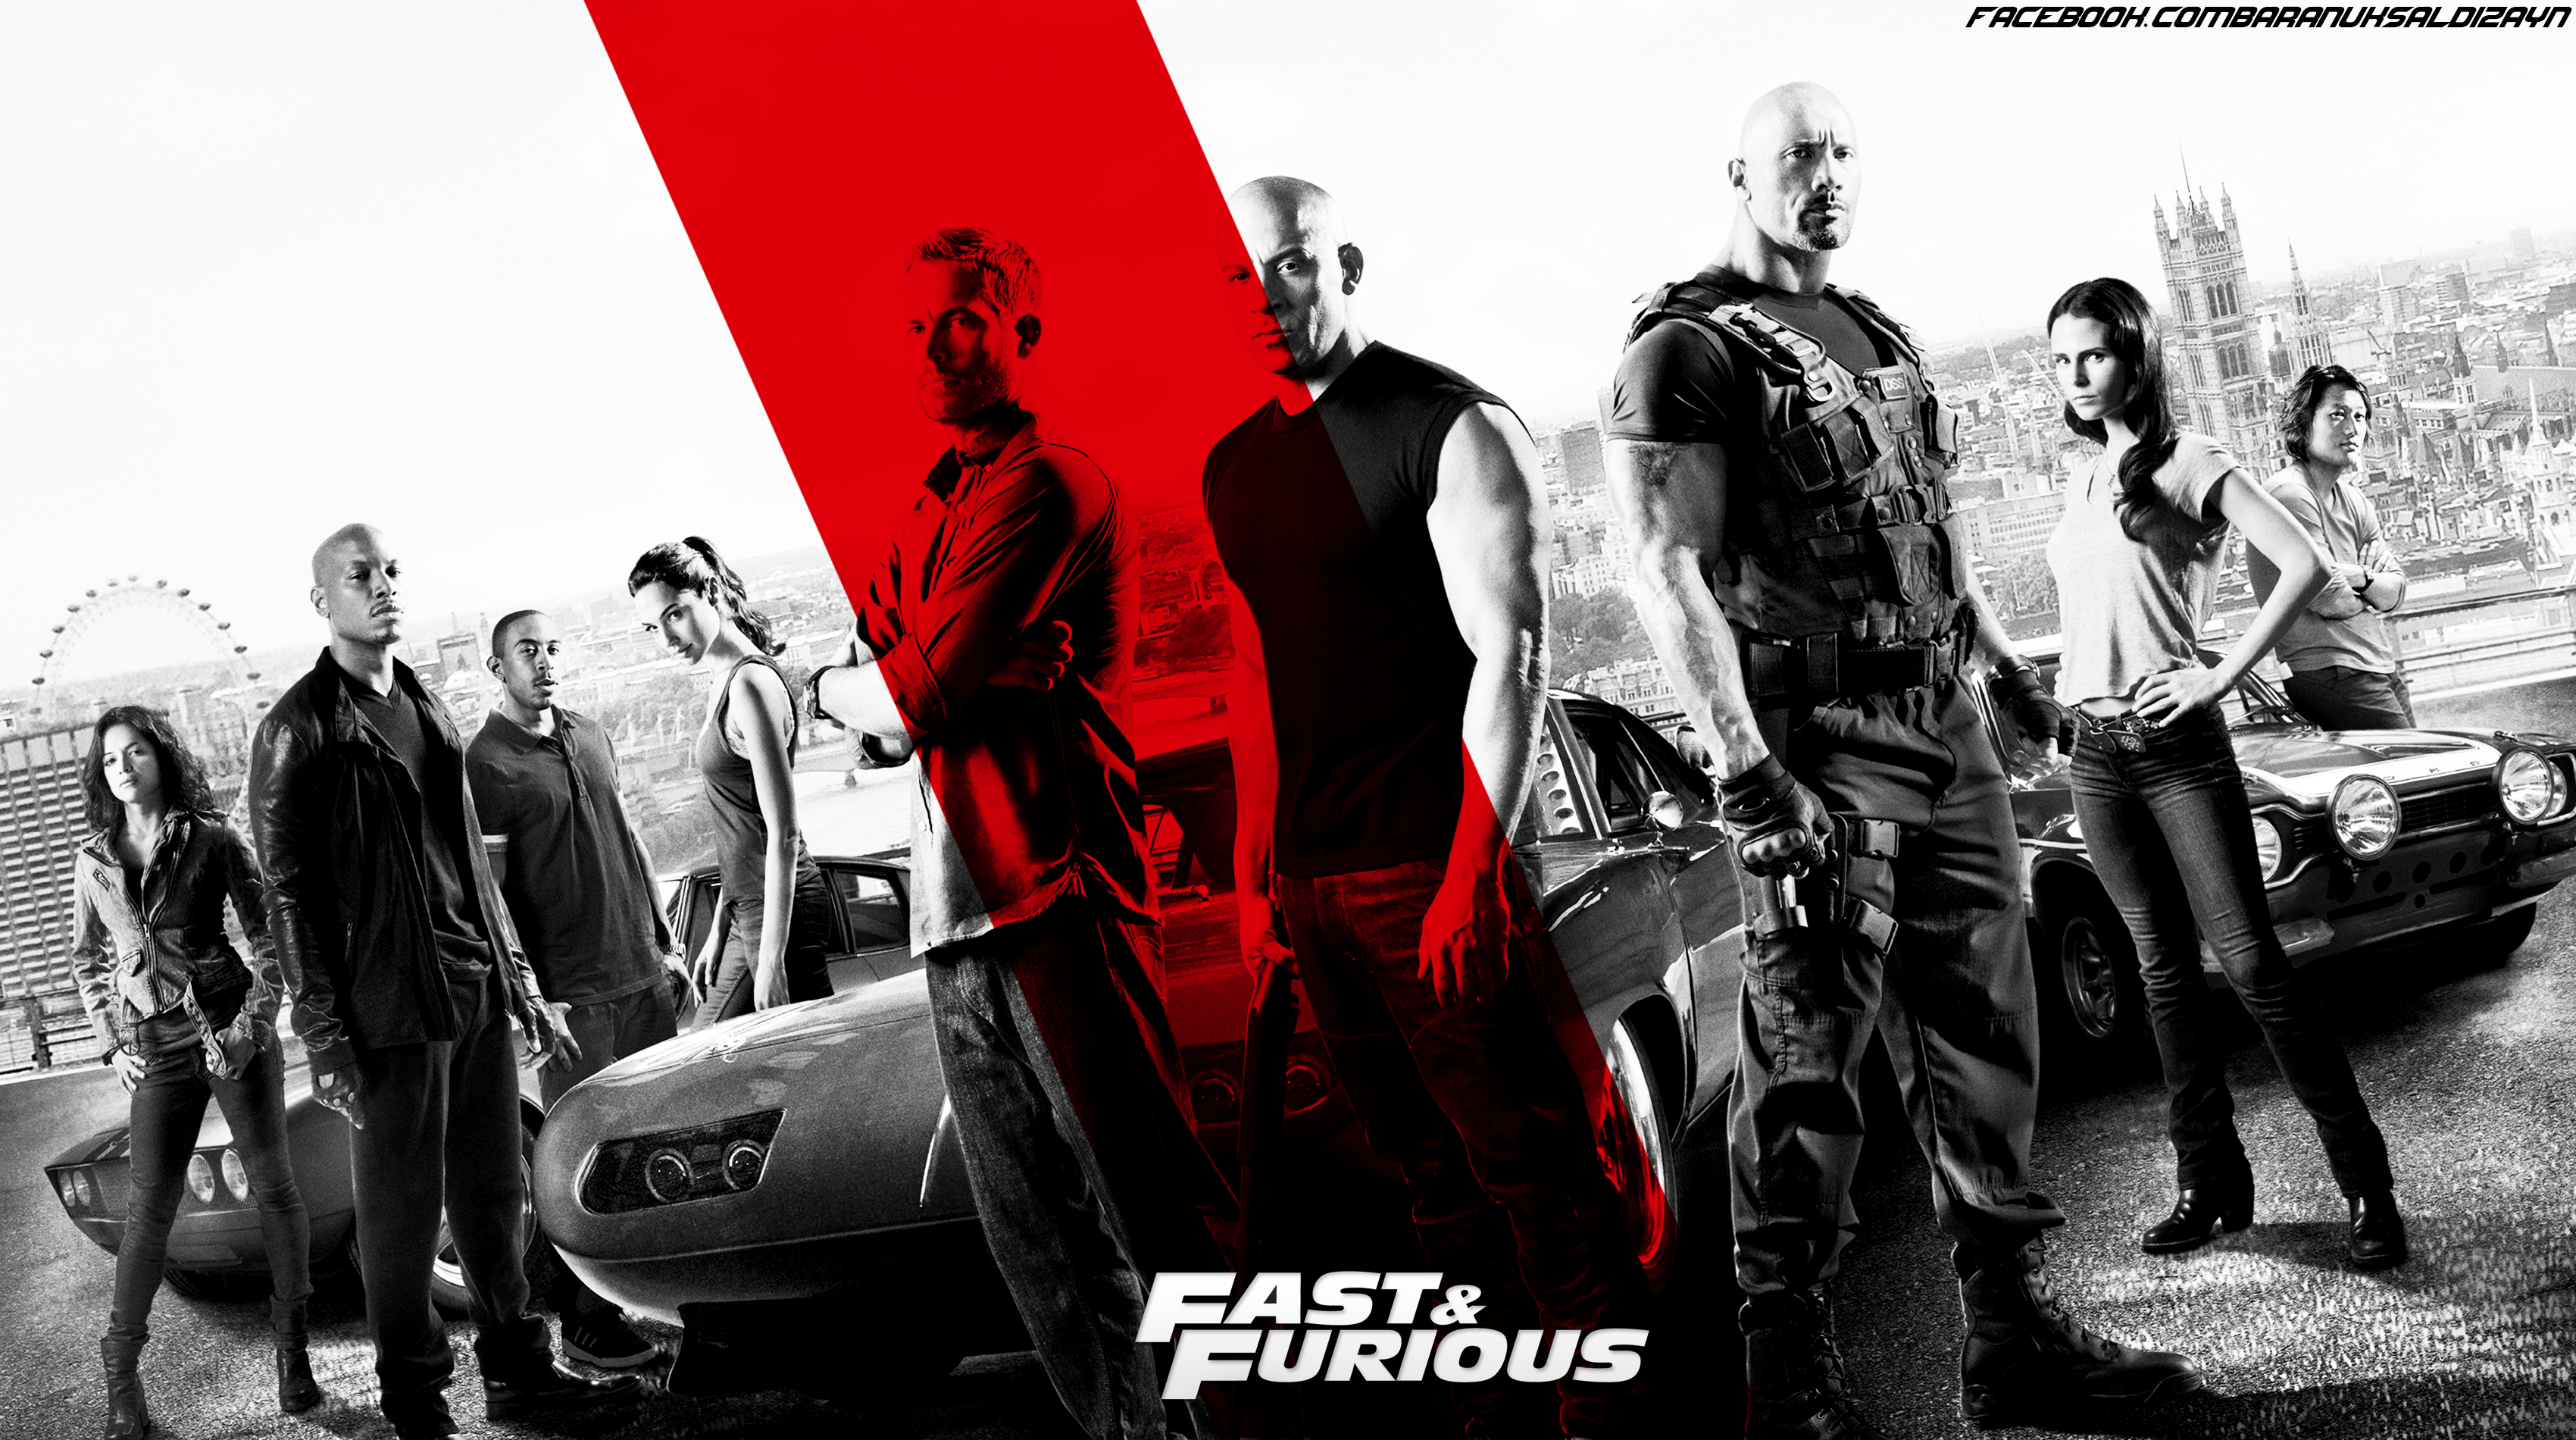 Fast Furious HD Wallpapers Backgrounds Wallpaper HD